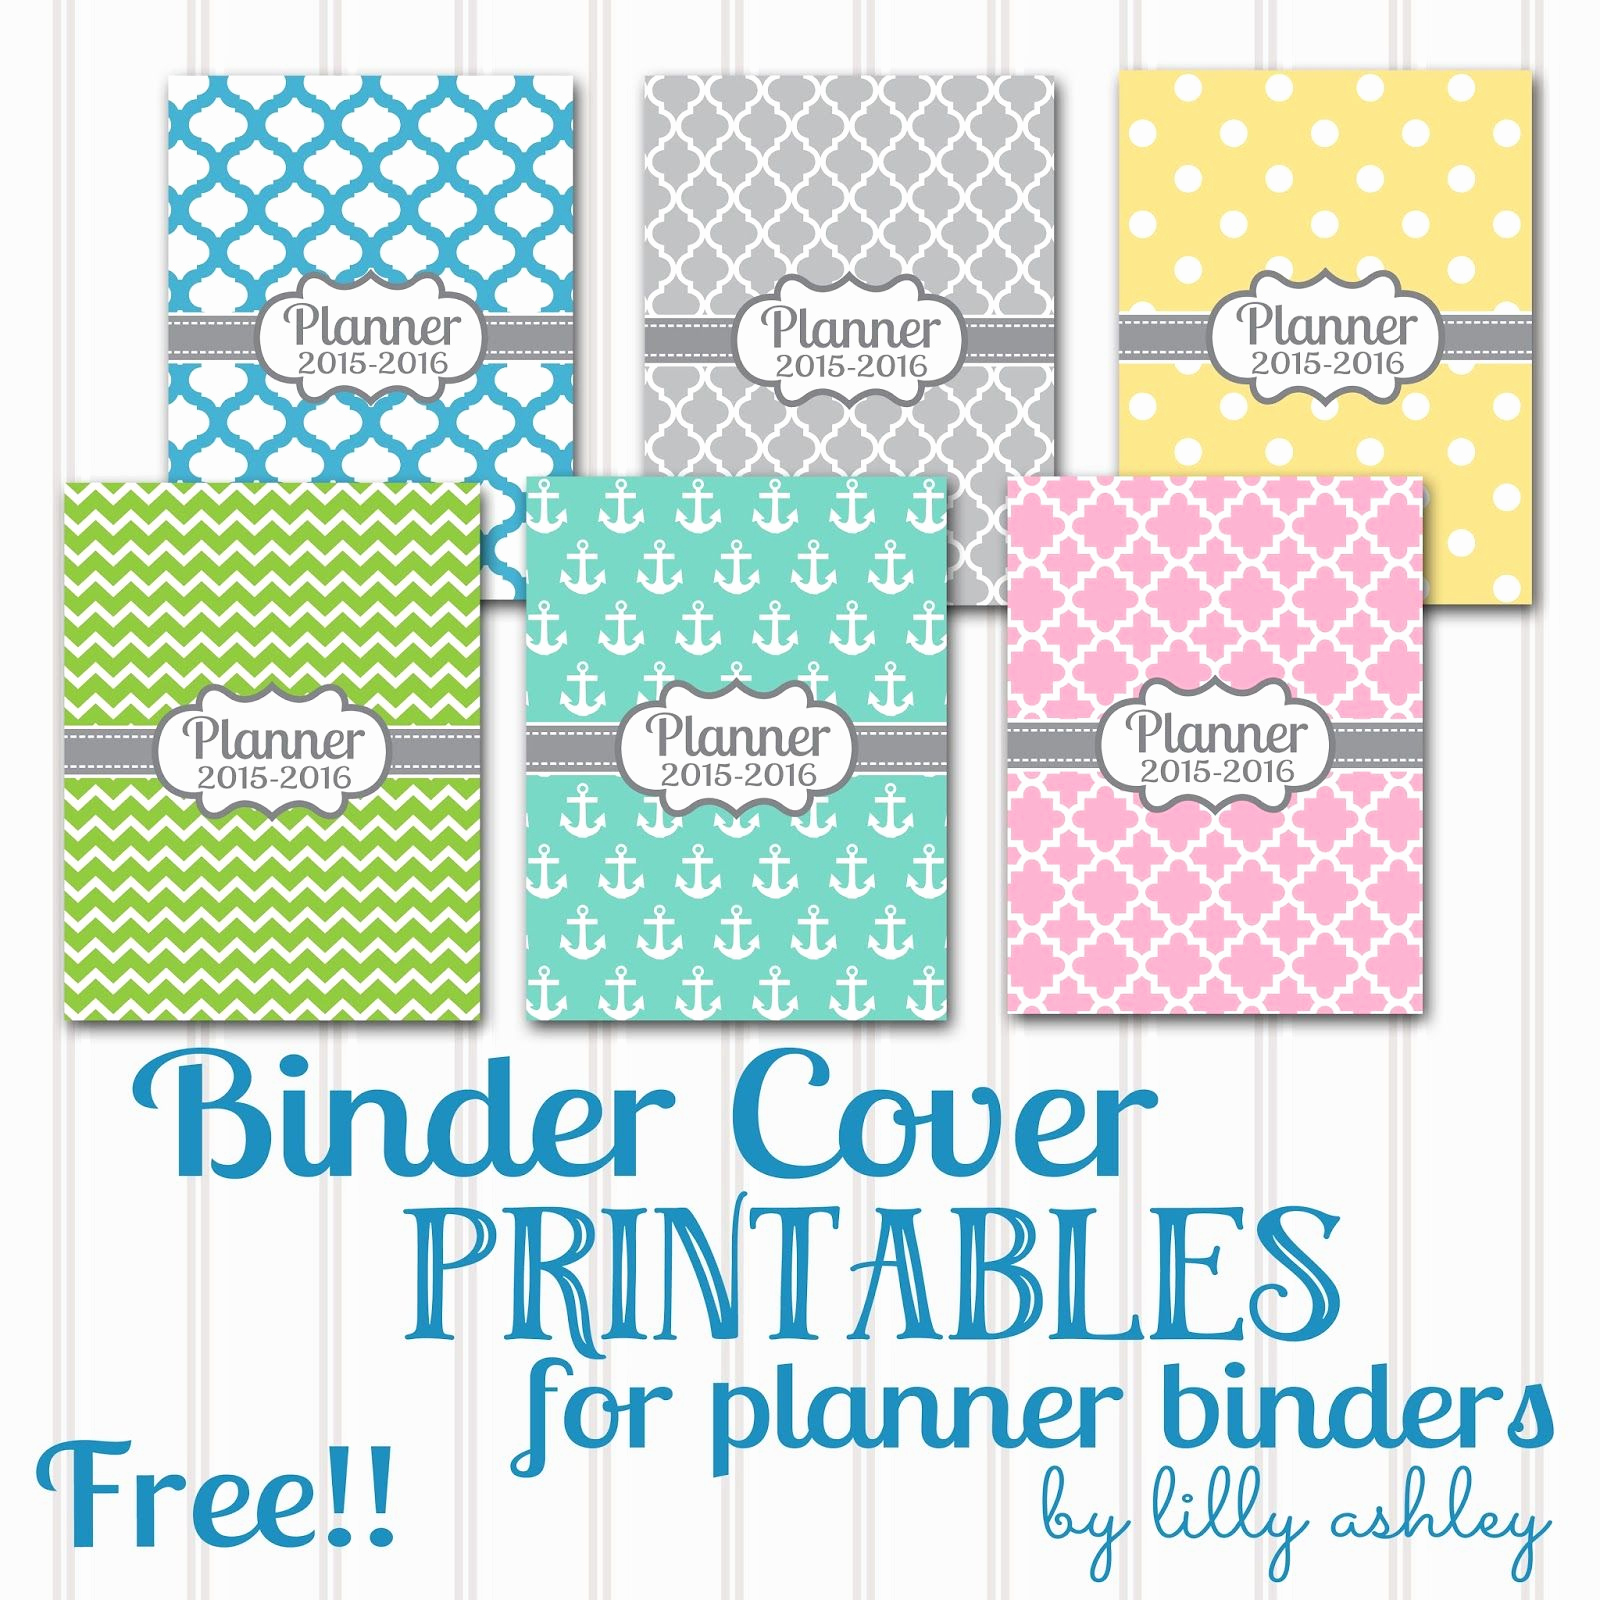 Free Editable Printable Binder Covers New Make It Create by Lillyashley Freebie Downloads Free